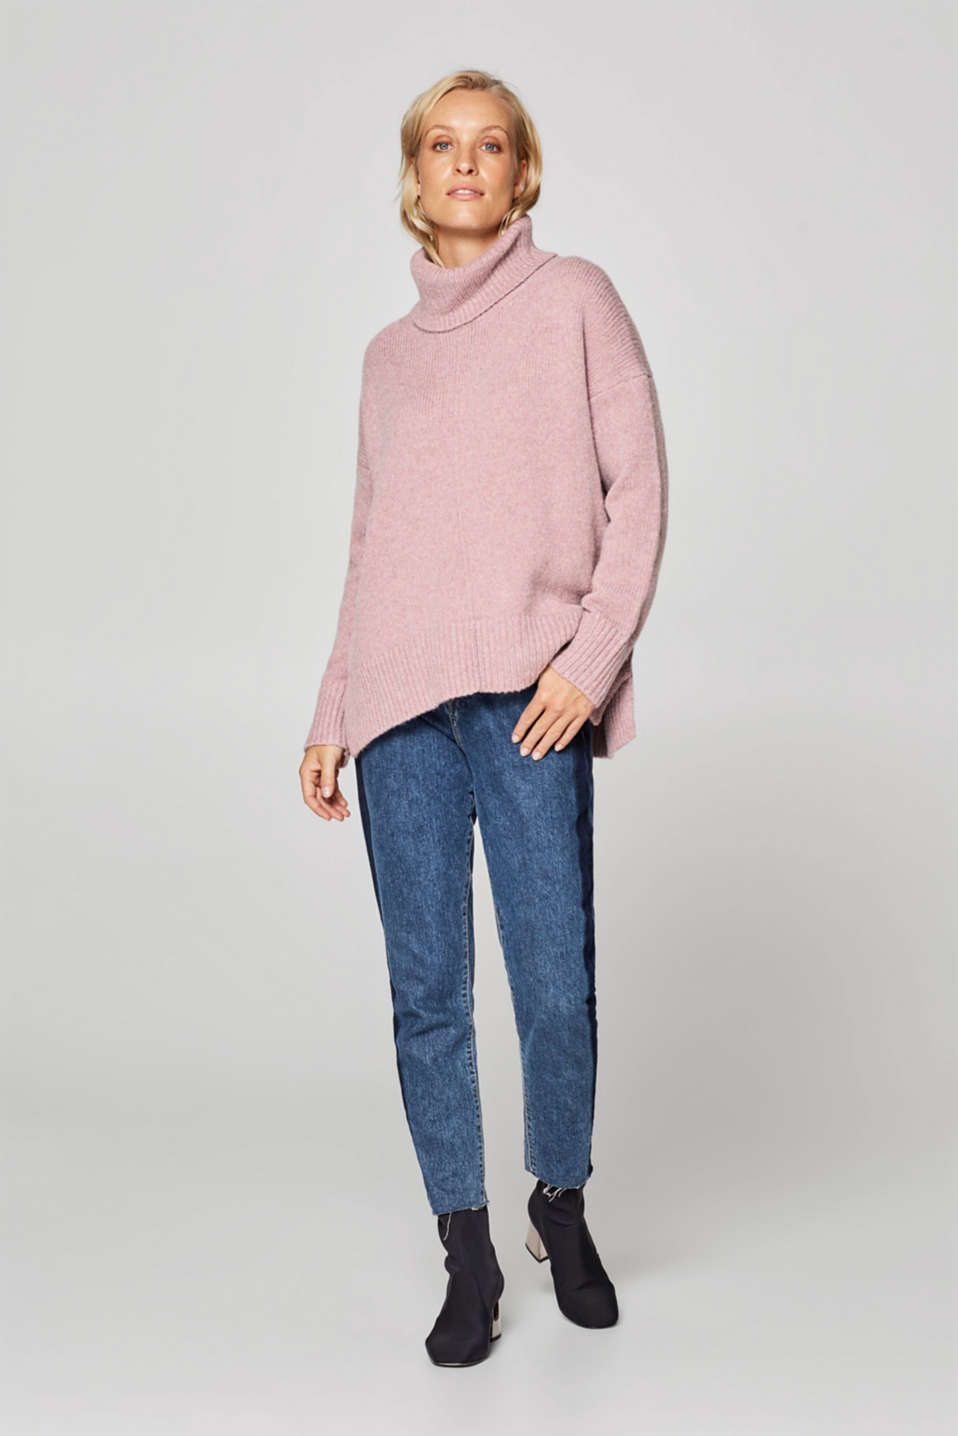 Esprit - Wool blend: oversized jumper with a polo neck